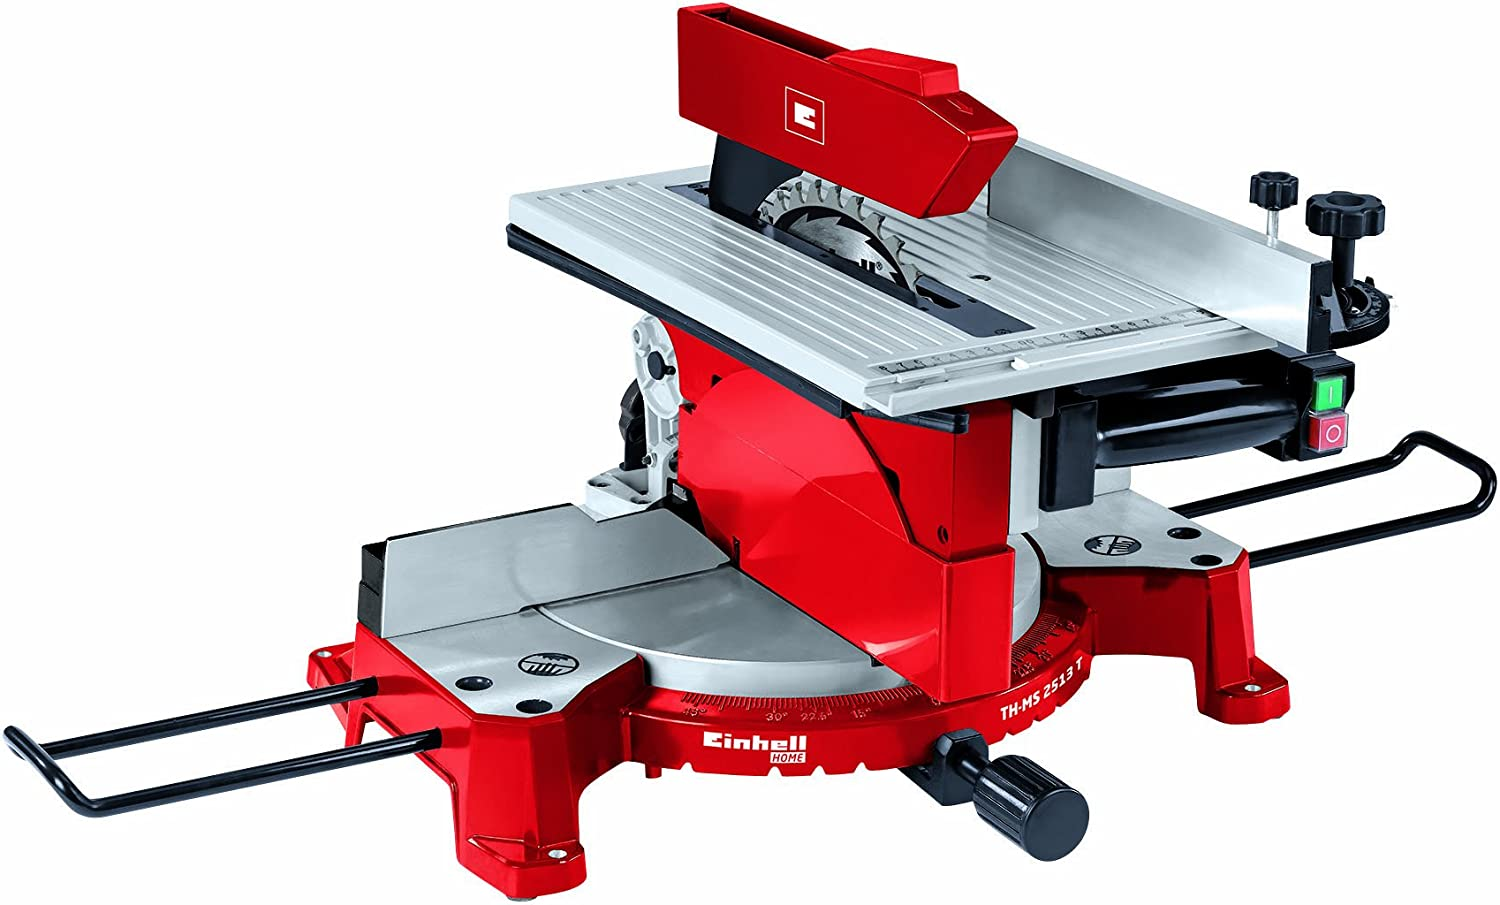 INGLETADORA EINHELL TH-MS 2513 T  doble corte